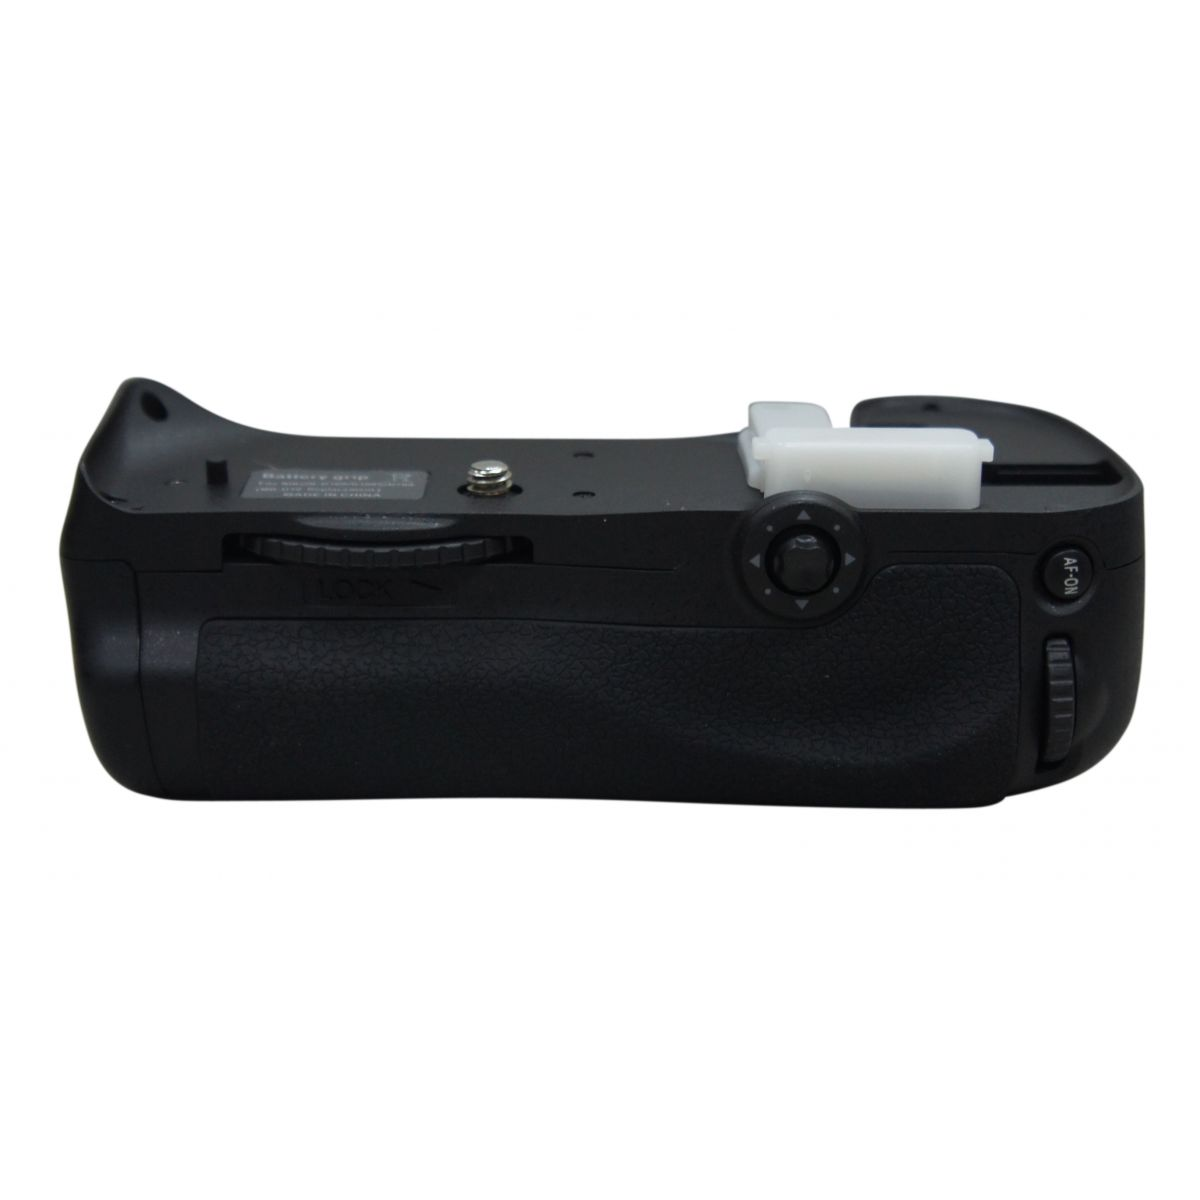 Battery Grip MB-D10 para Nikon D300, D300S, D700